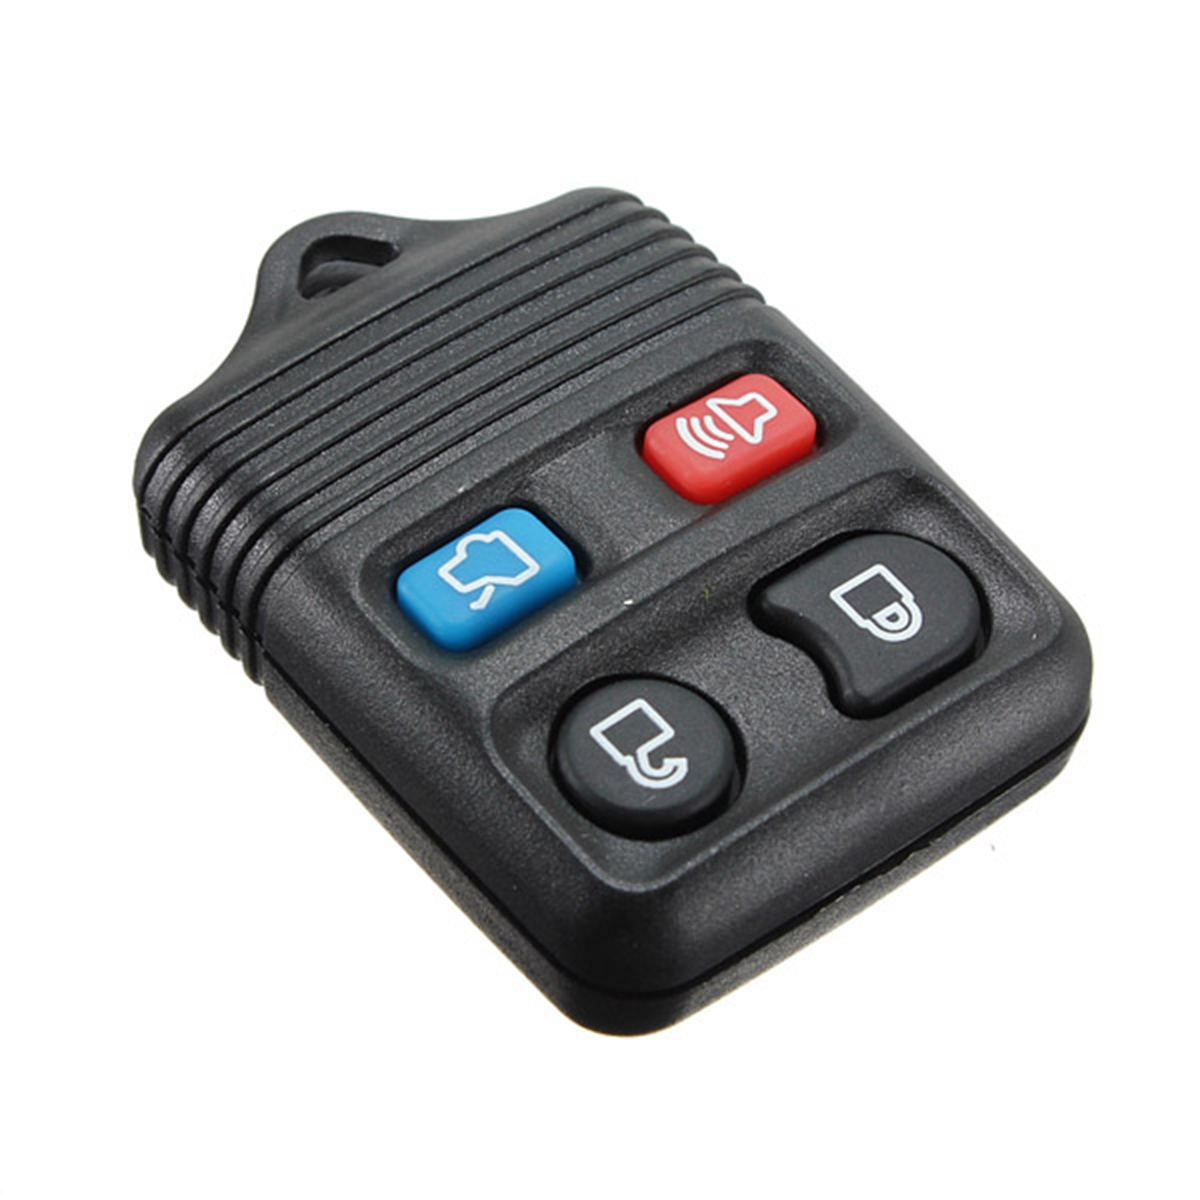 4 btn keyless entry key remote fob clicker transmitter for. Black Bedroom Furniture Sets. Home Design Ideas